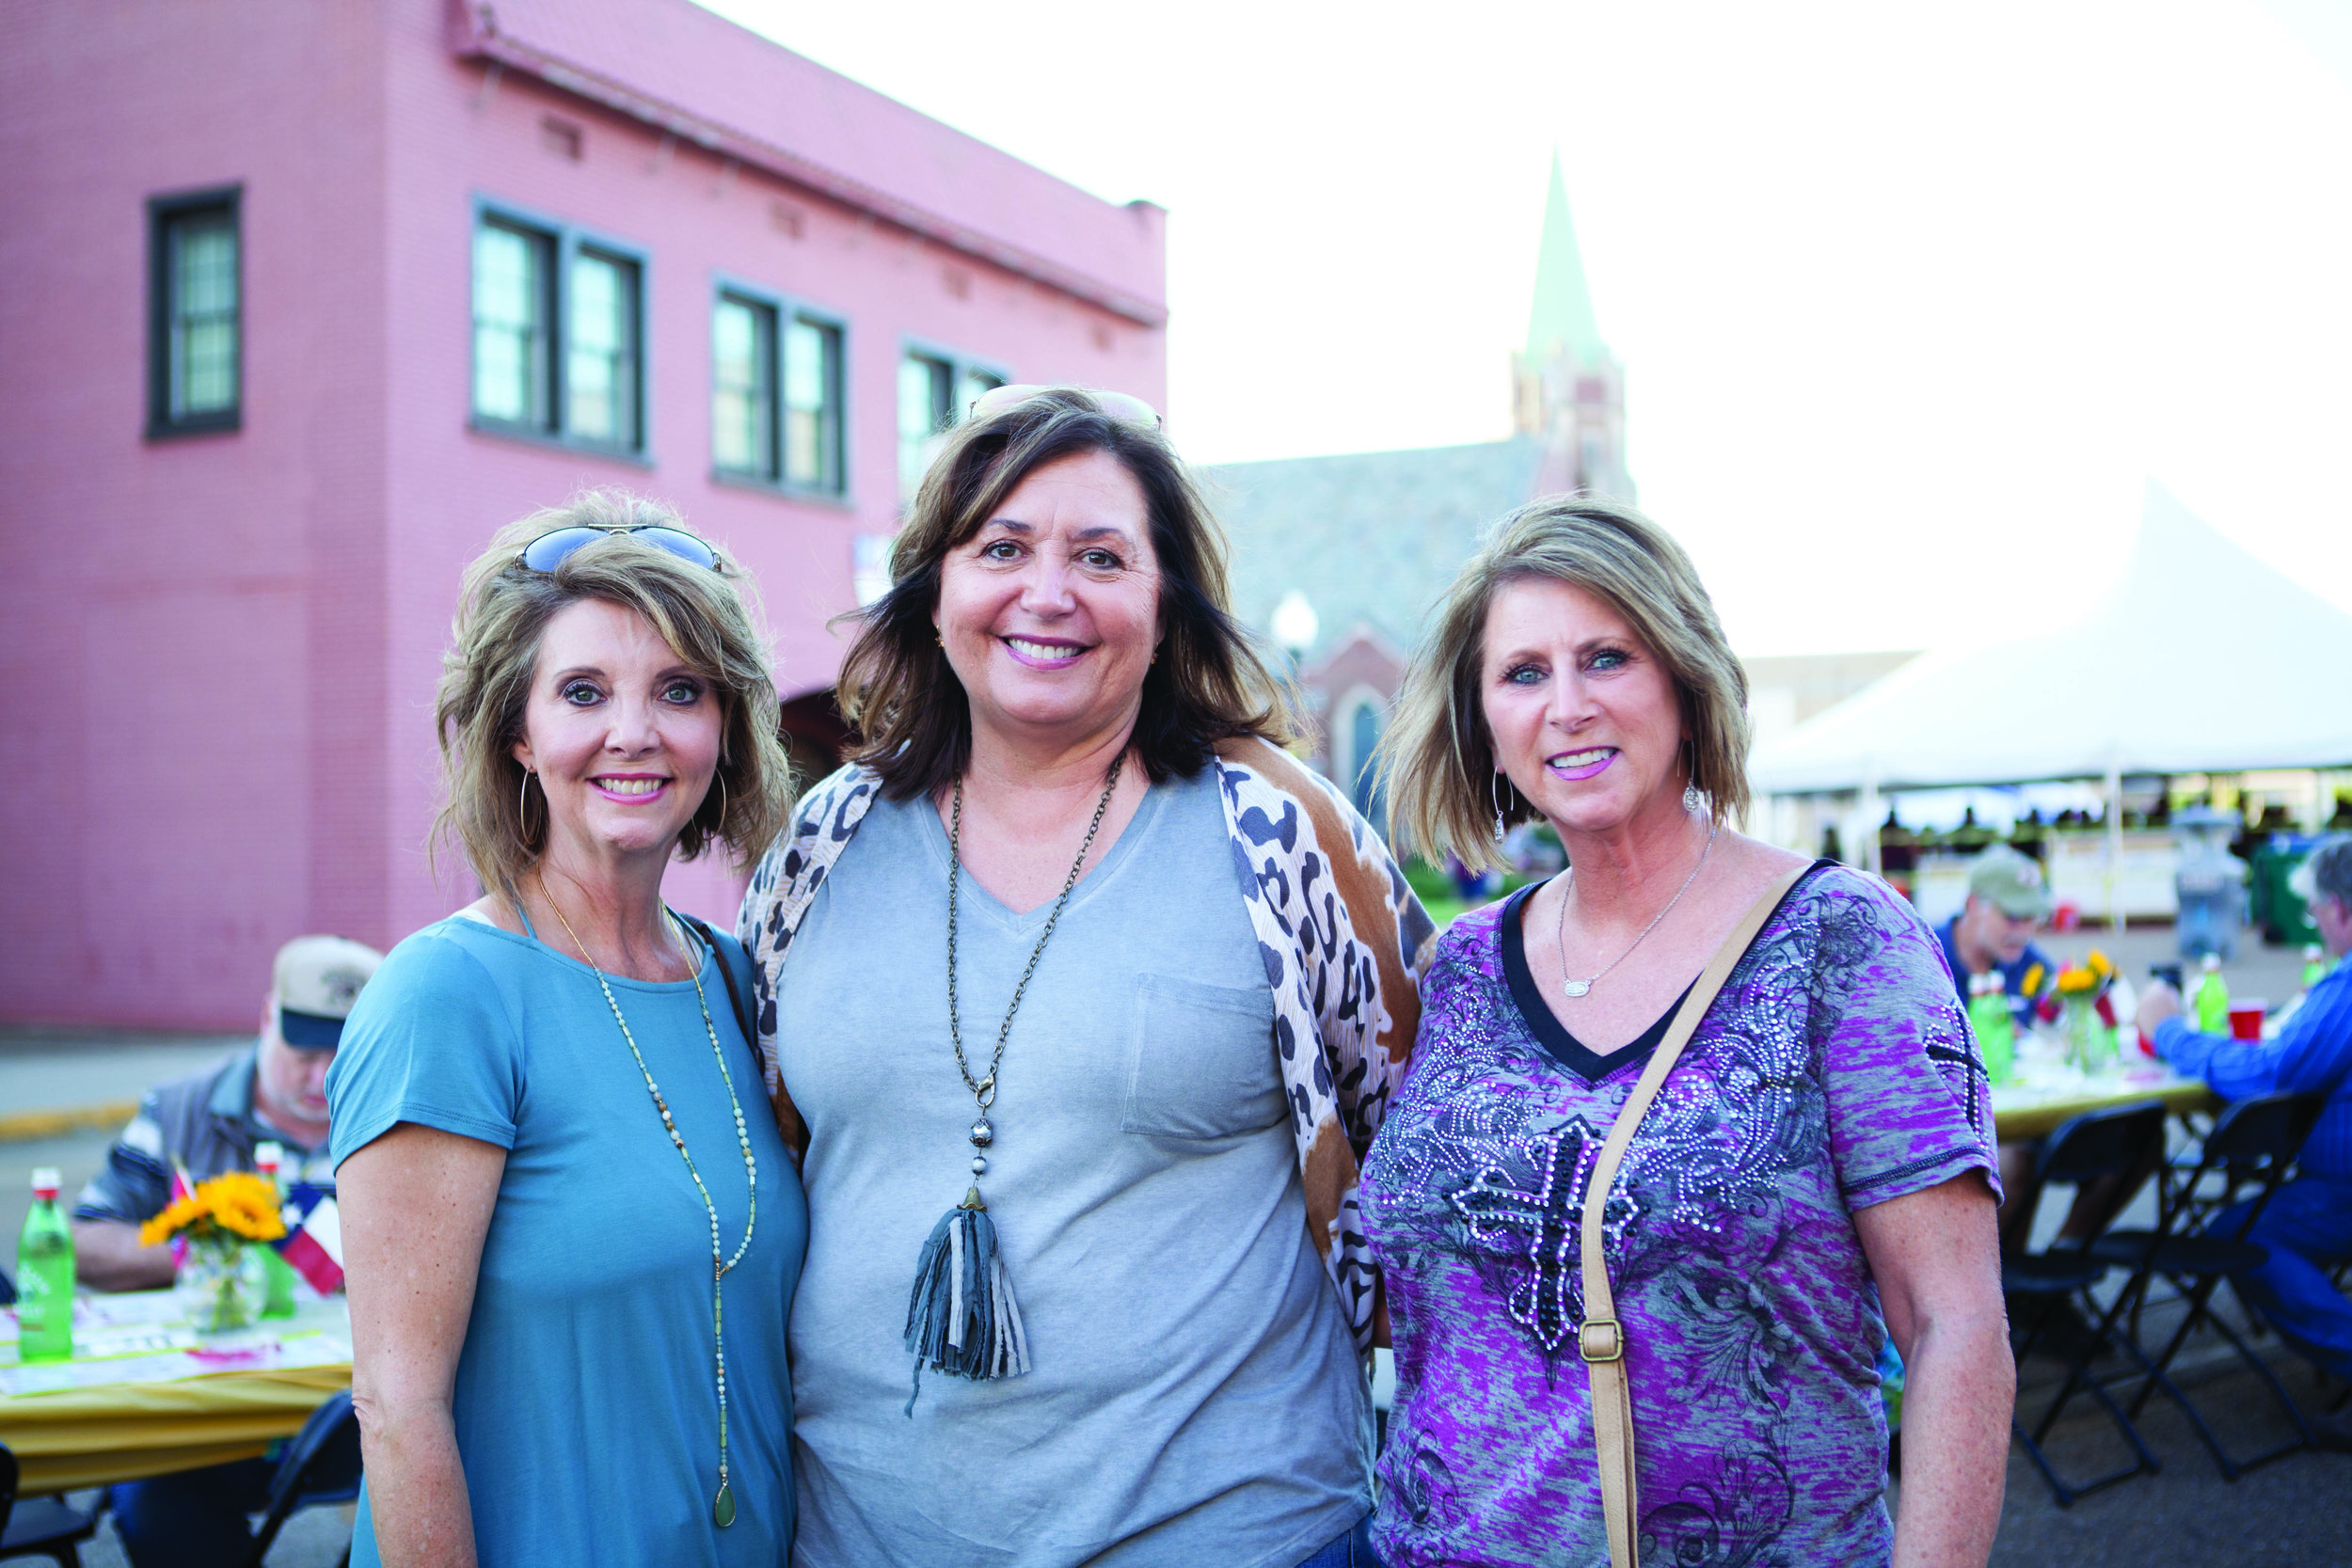 Lisa McPherson, Angie Huff and Denise Ludlow